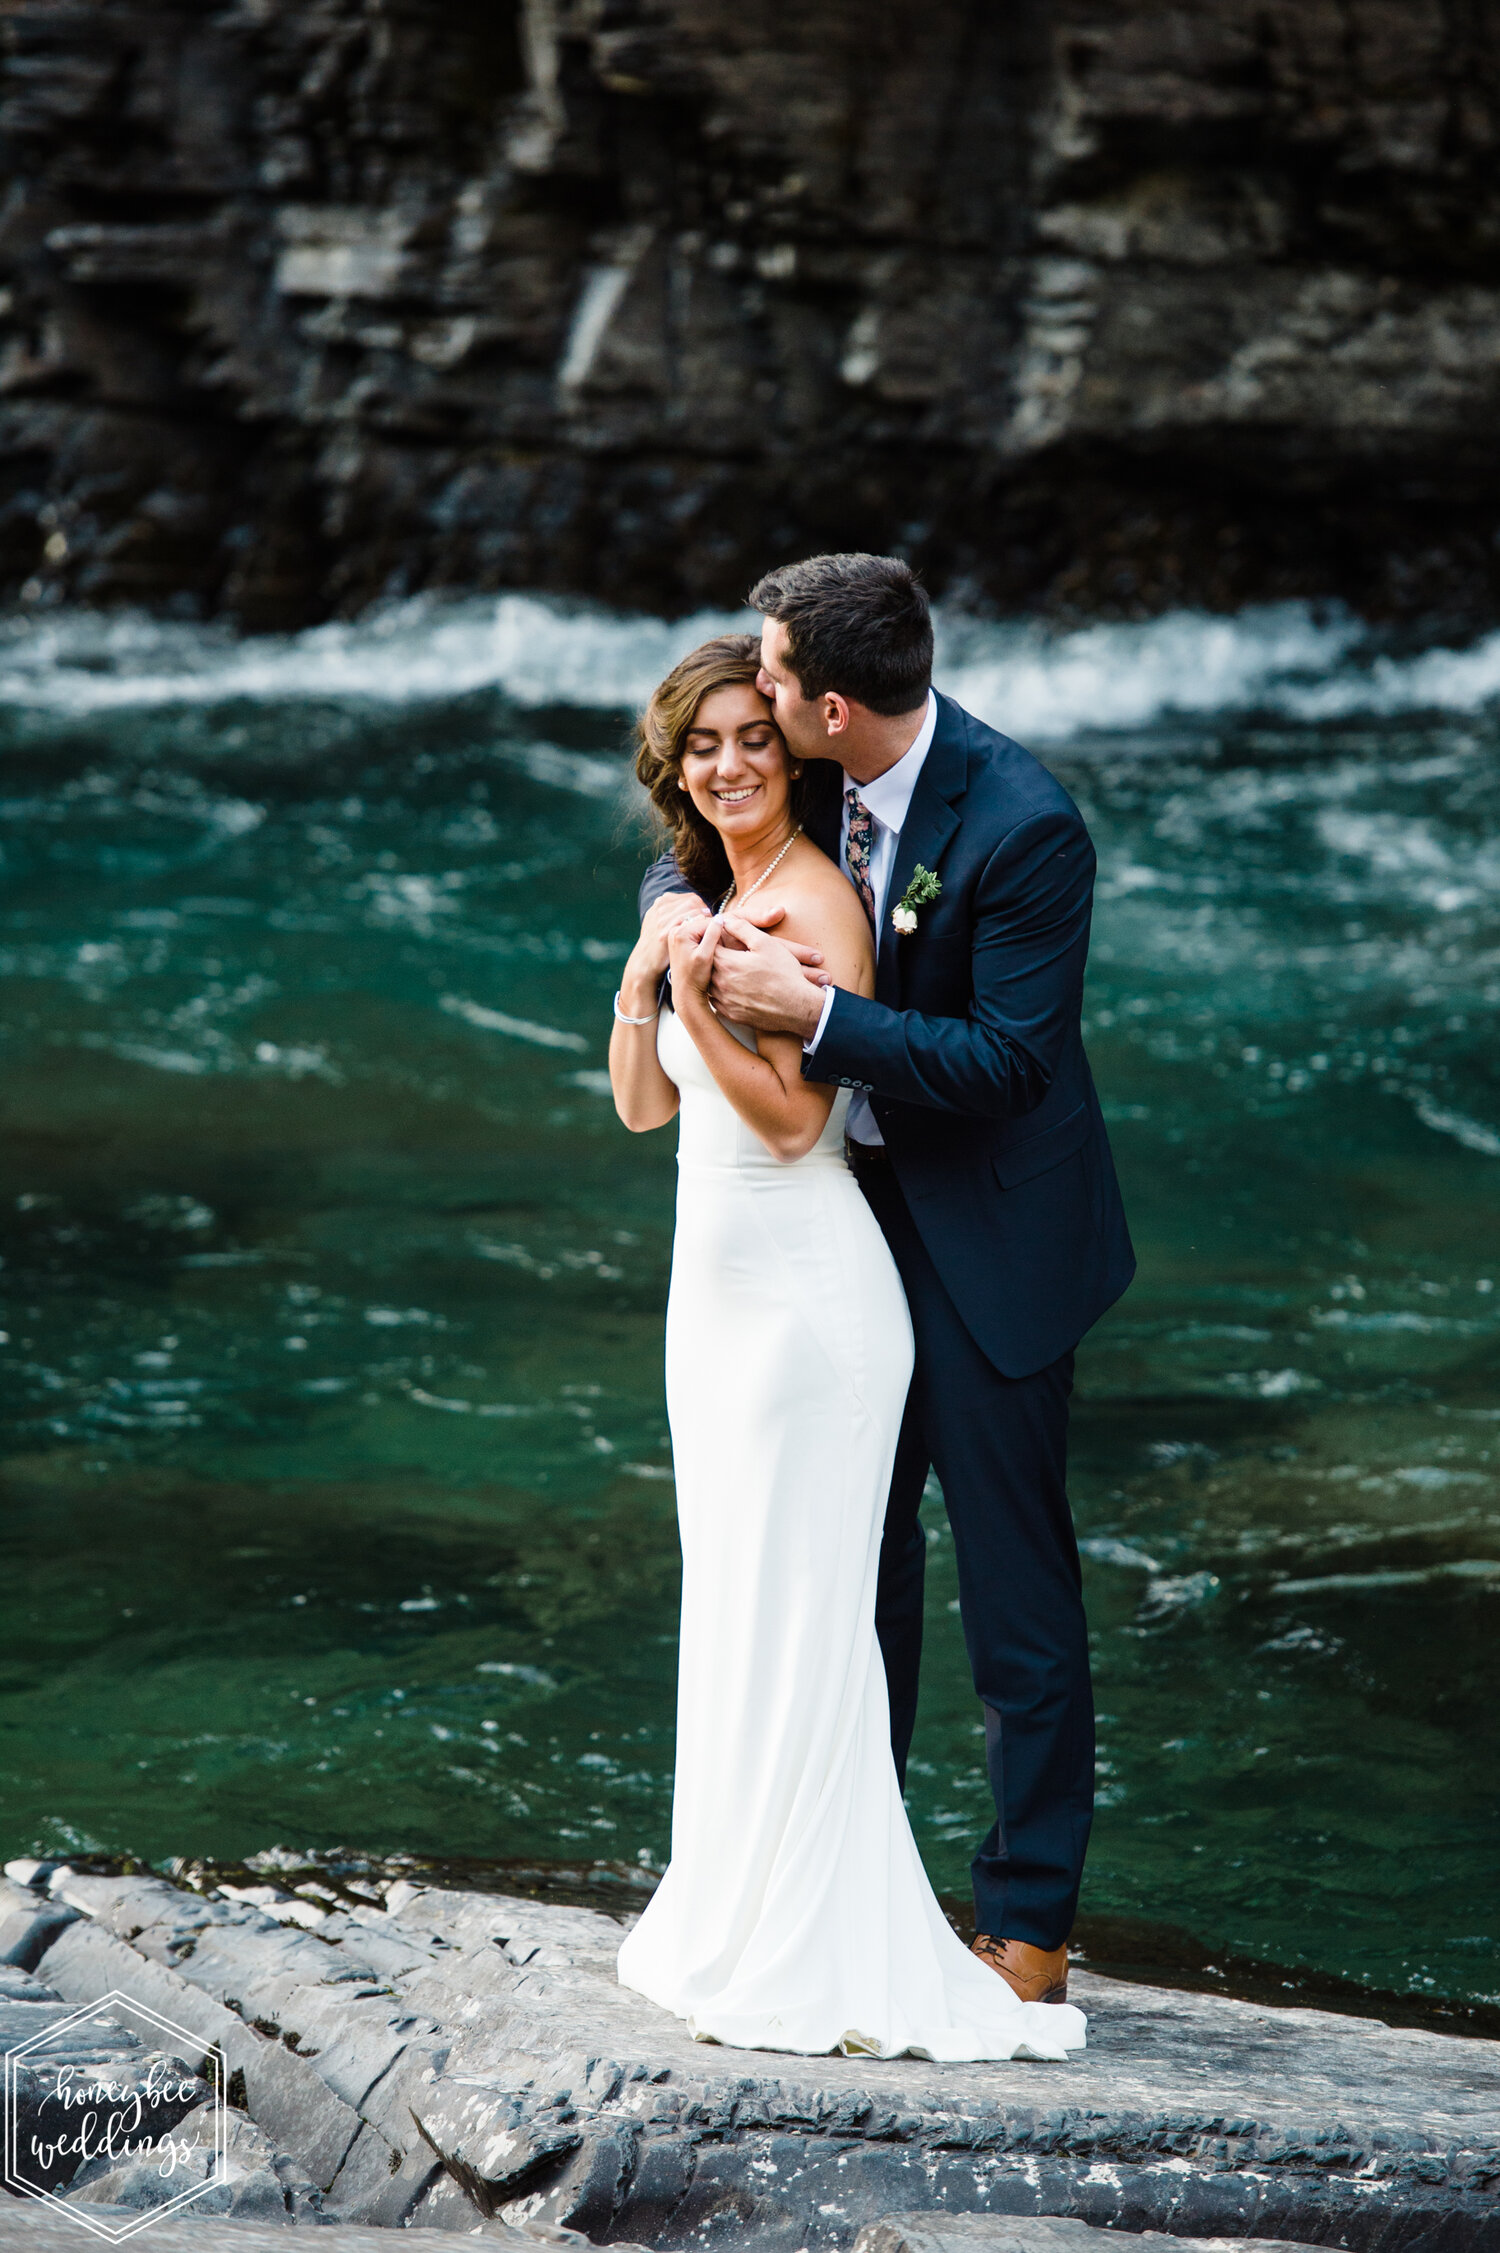 014Glacier National Park Wedding_Glacier Outdoor Center_Honeybee Weddings_Anna & Seth_July 21, 2019-997.jpg